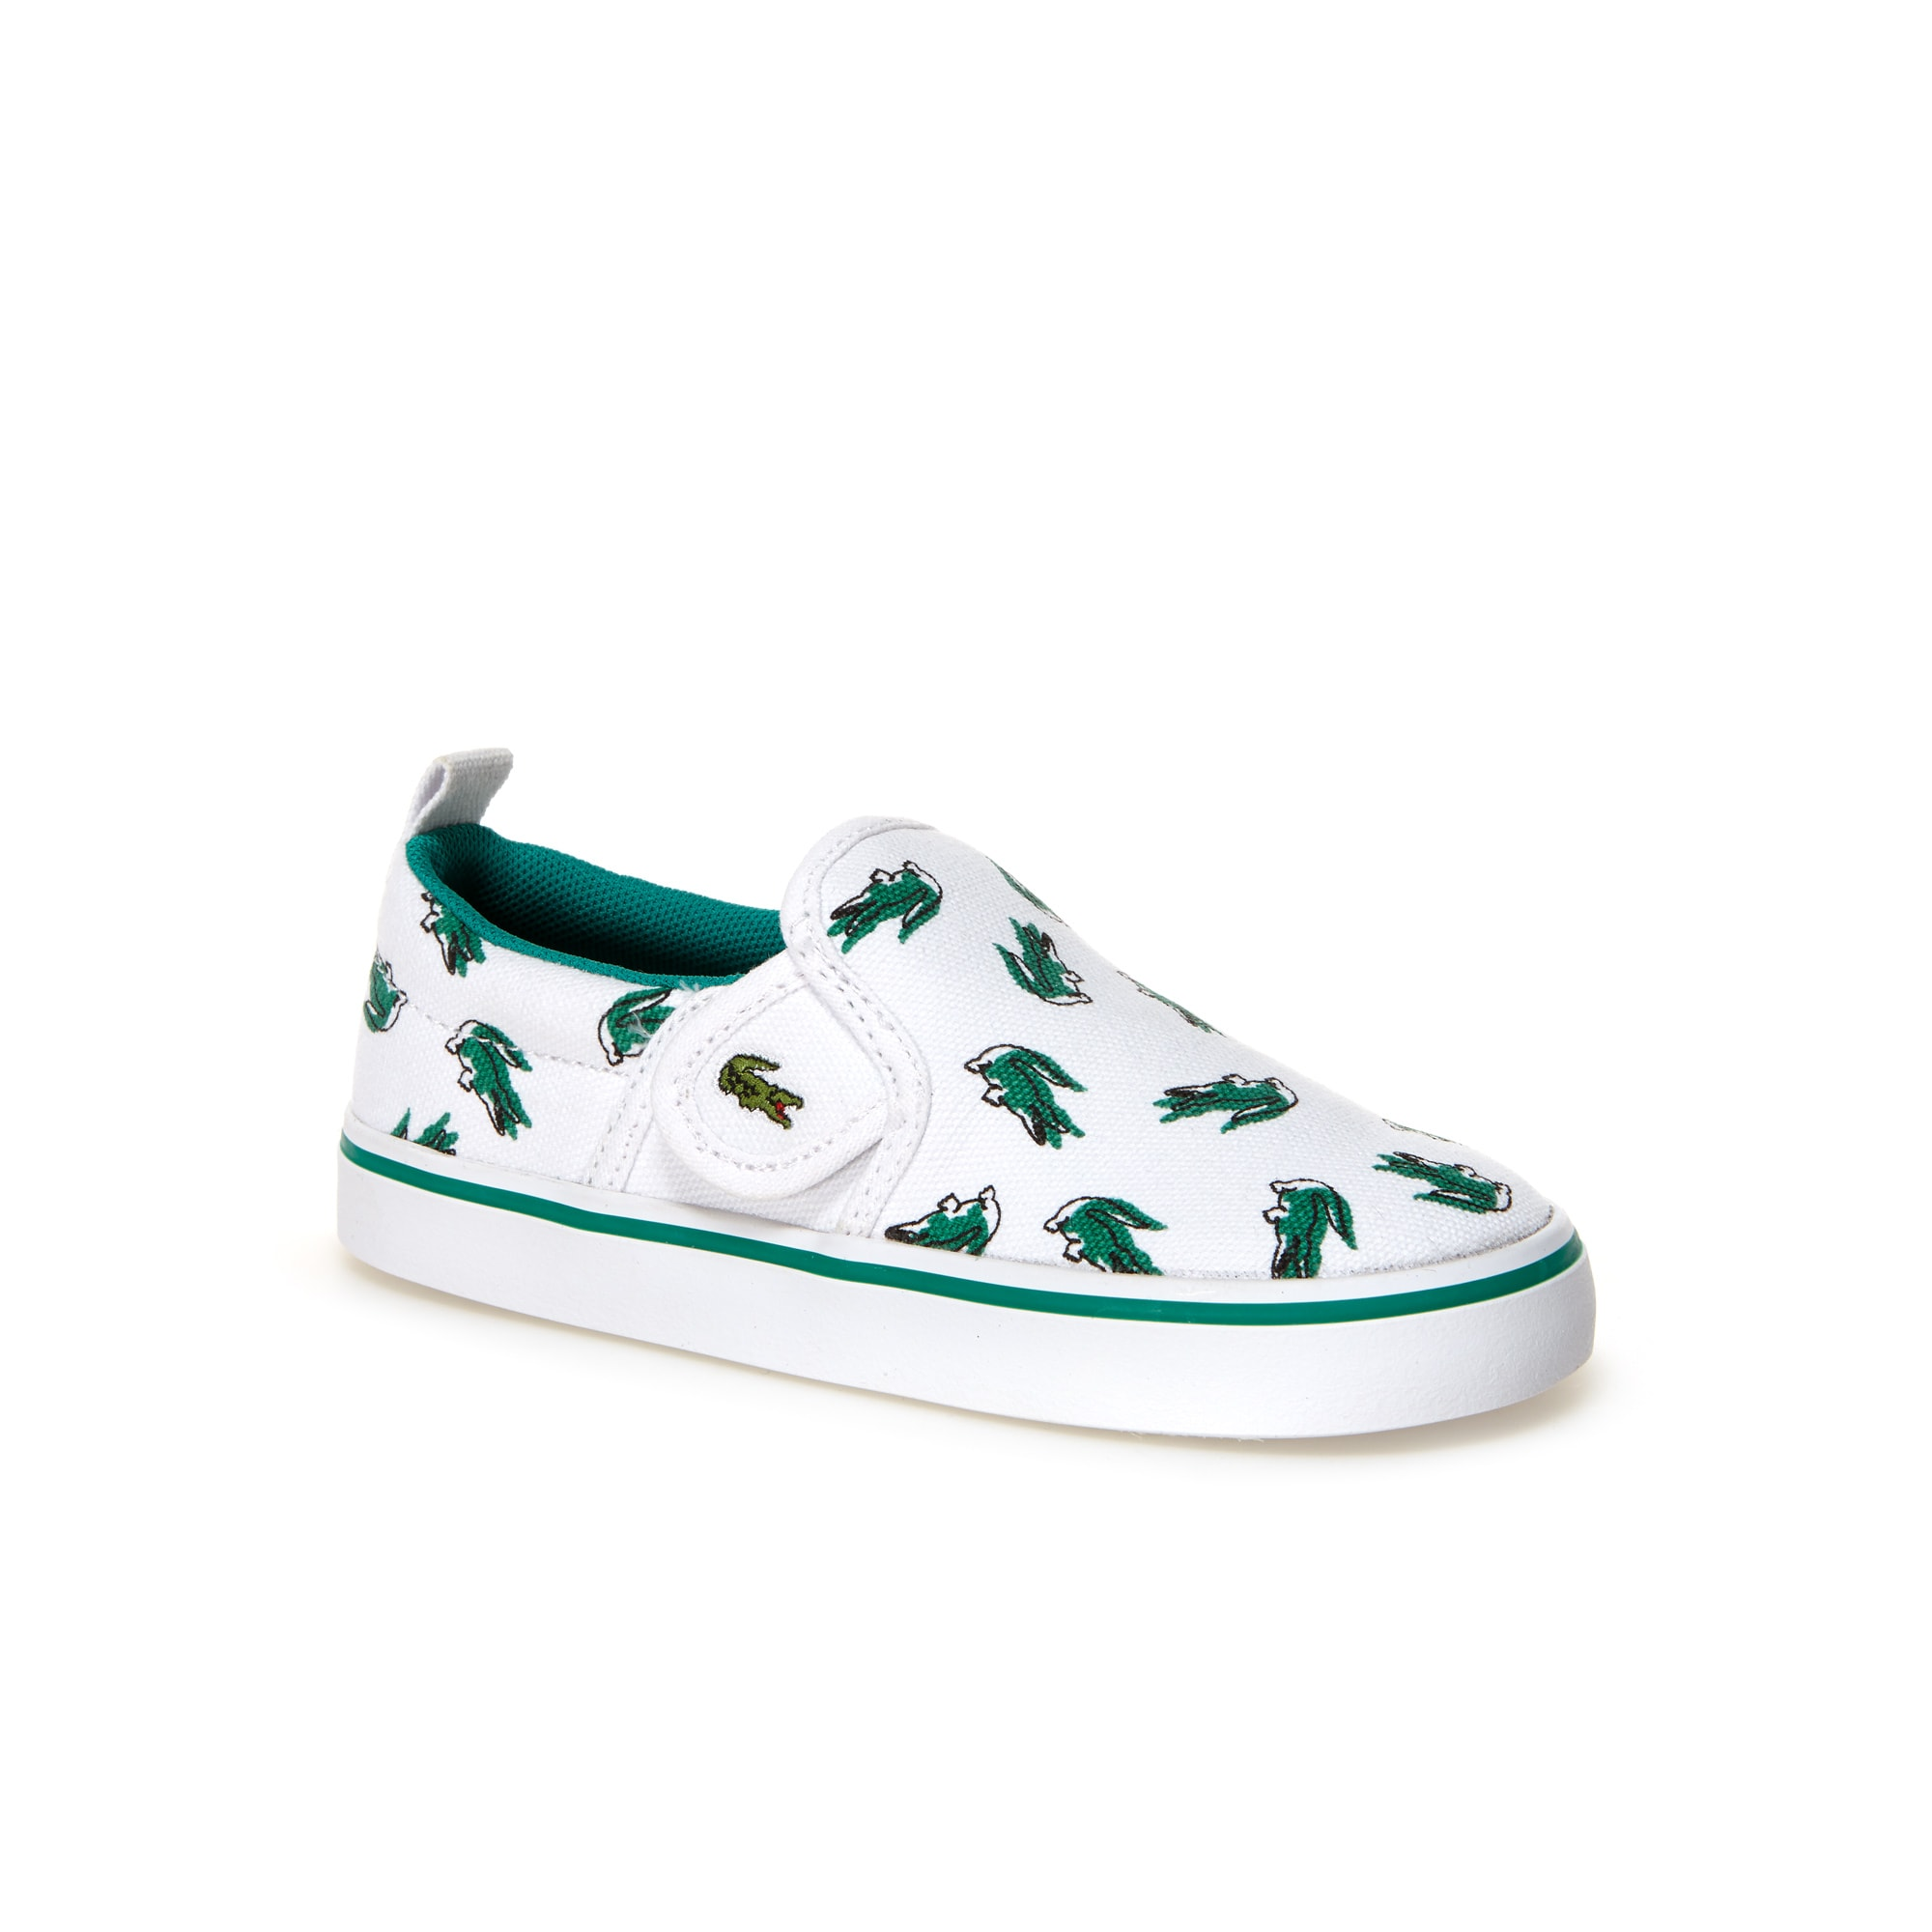 Slip-on Enfant Gazon en toile